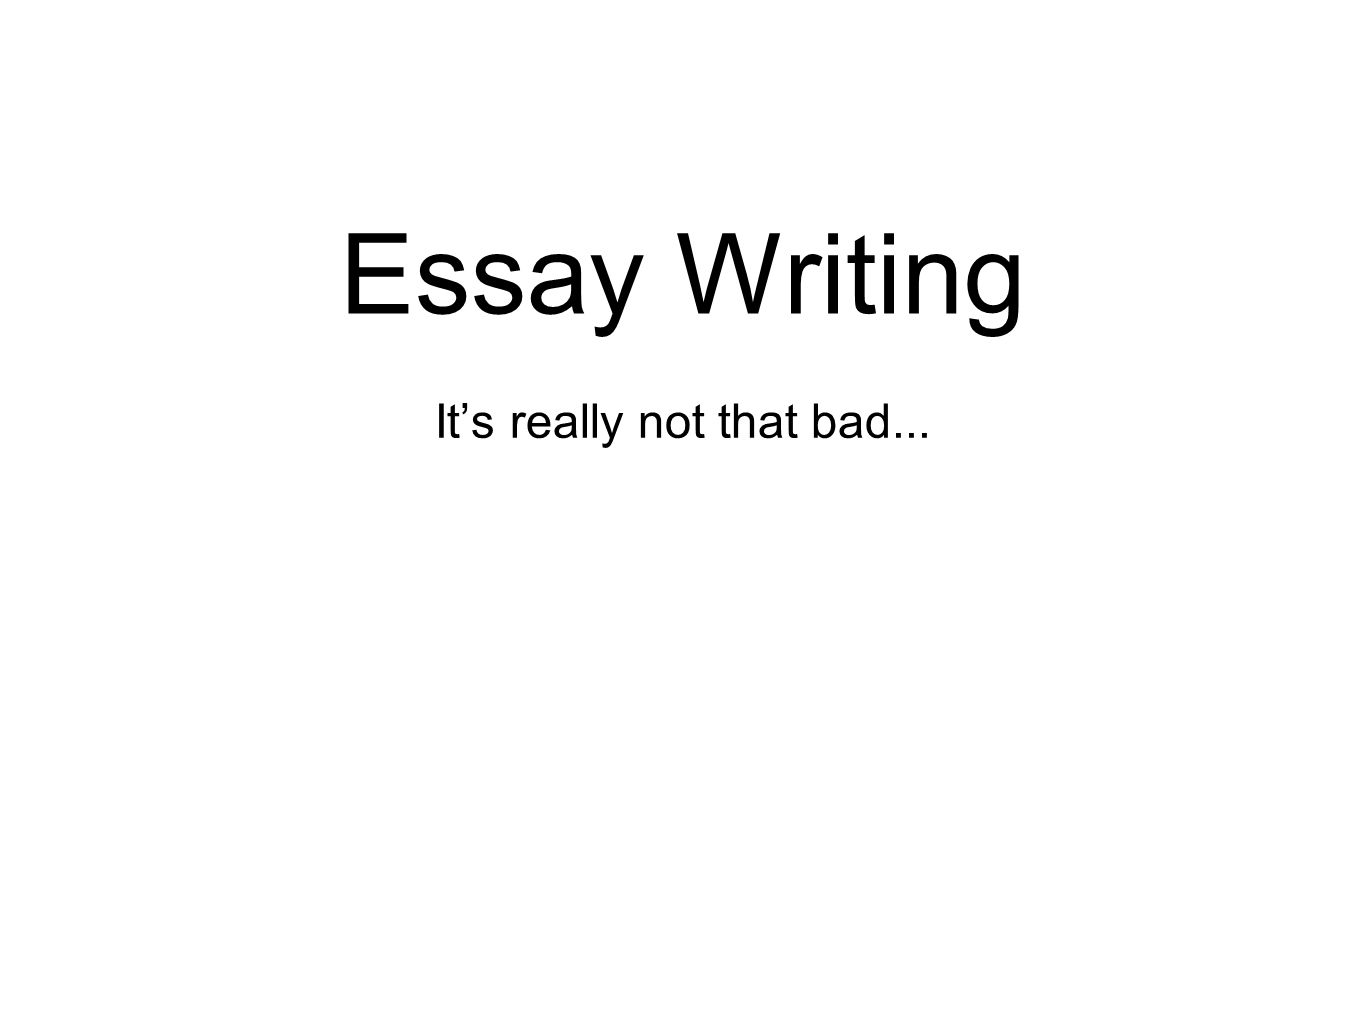 Narrative Essay Example High School  Essay Writing Its Really Not That Bad Essay About Learning English also Columbia Business School Essay Essay Writing Its Really Not That Bad The Essentials An  Reflective Essay On English Class